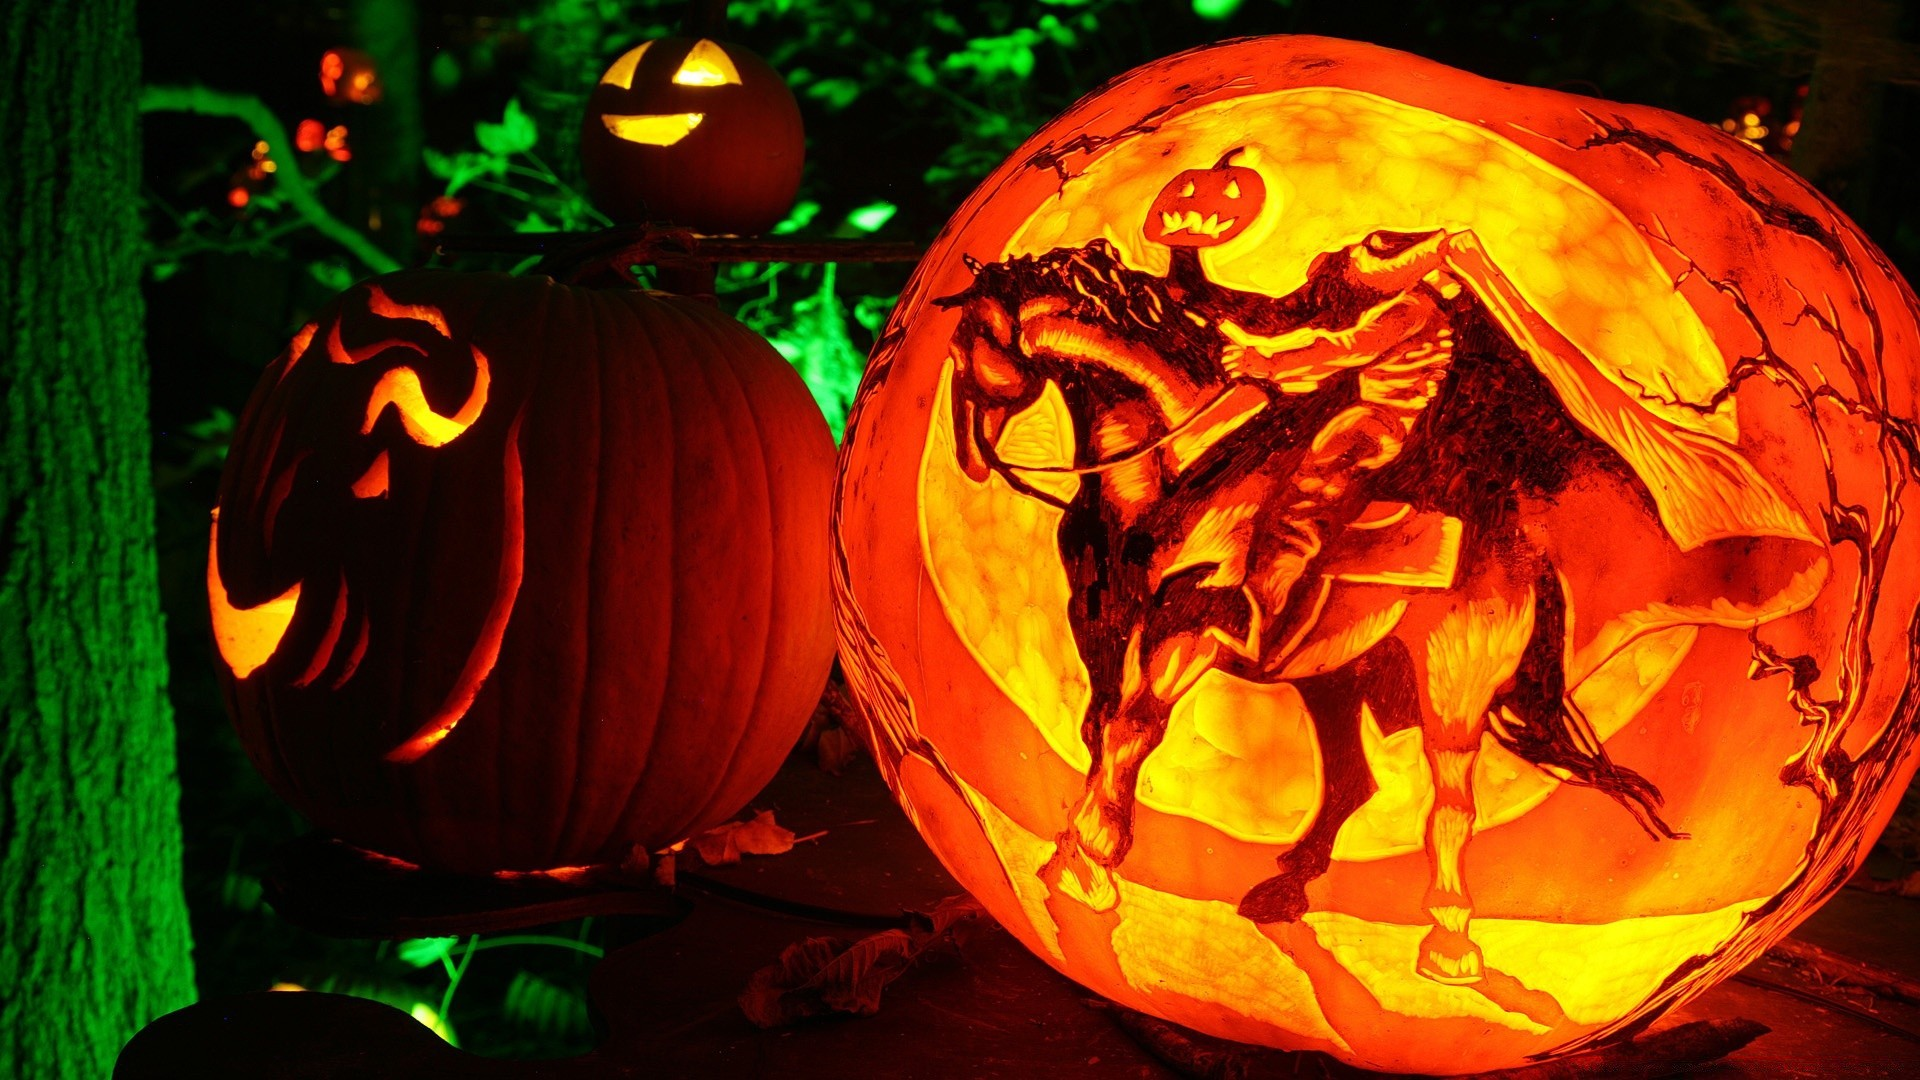 headless horseman jack o lantern. android wallpapers for free.